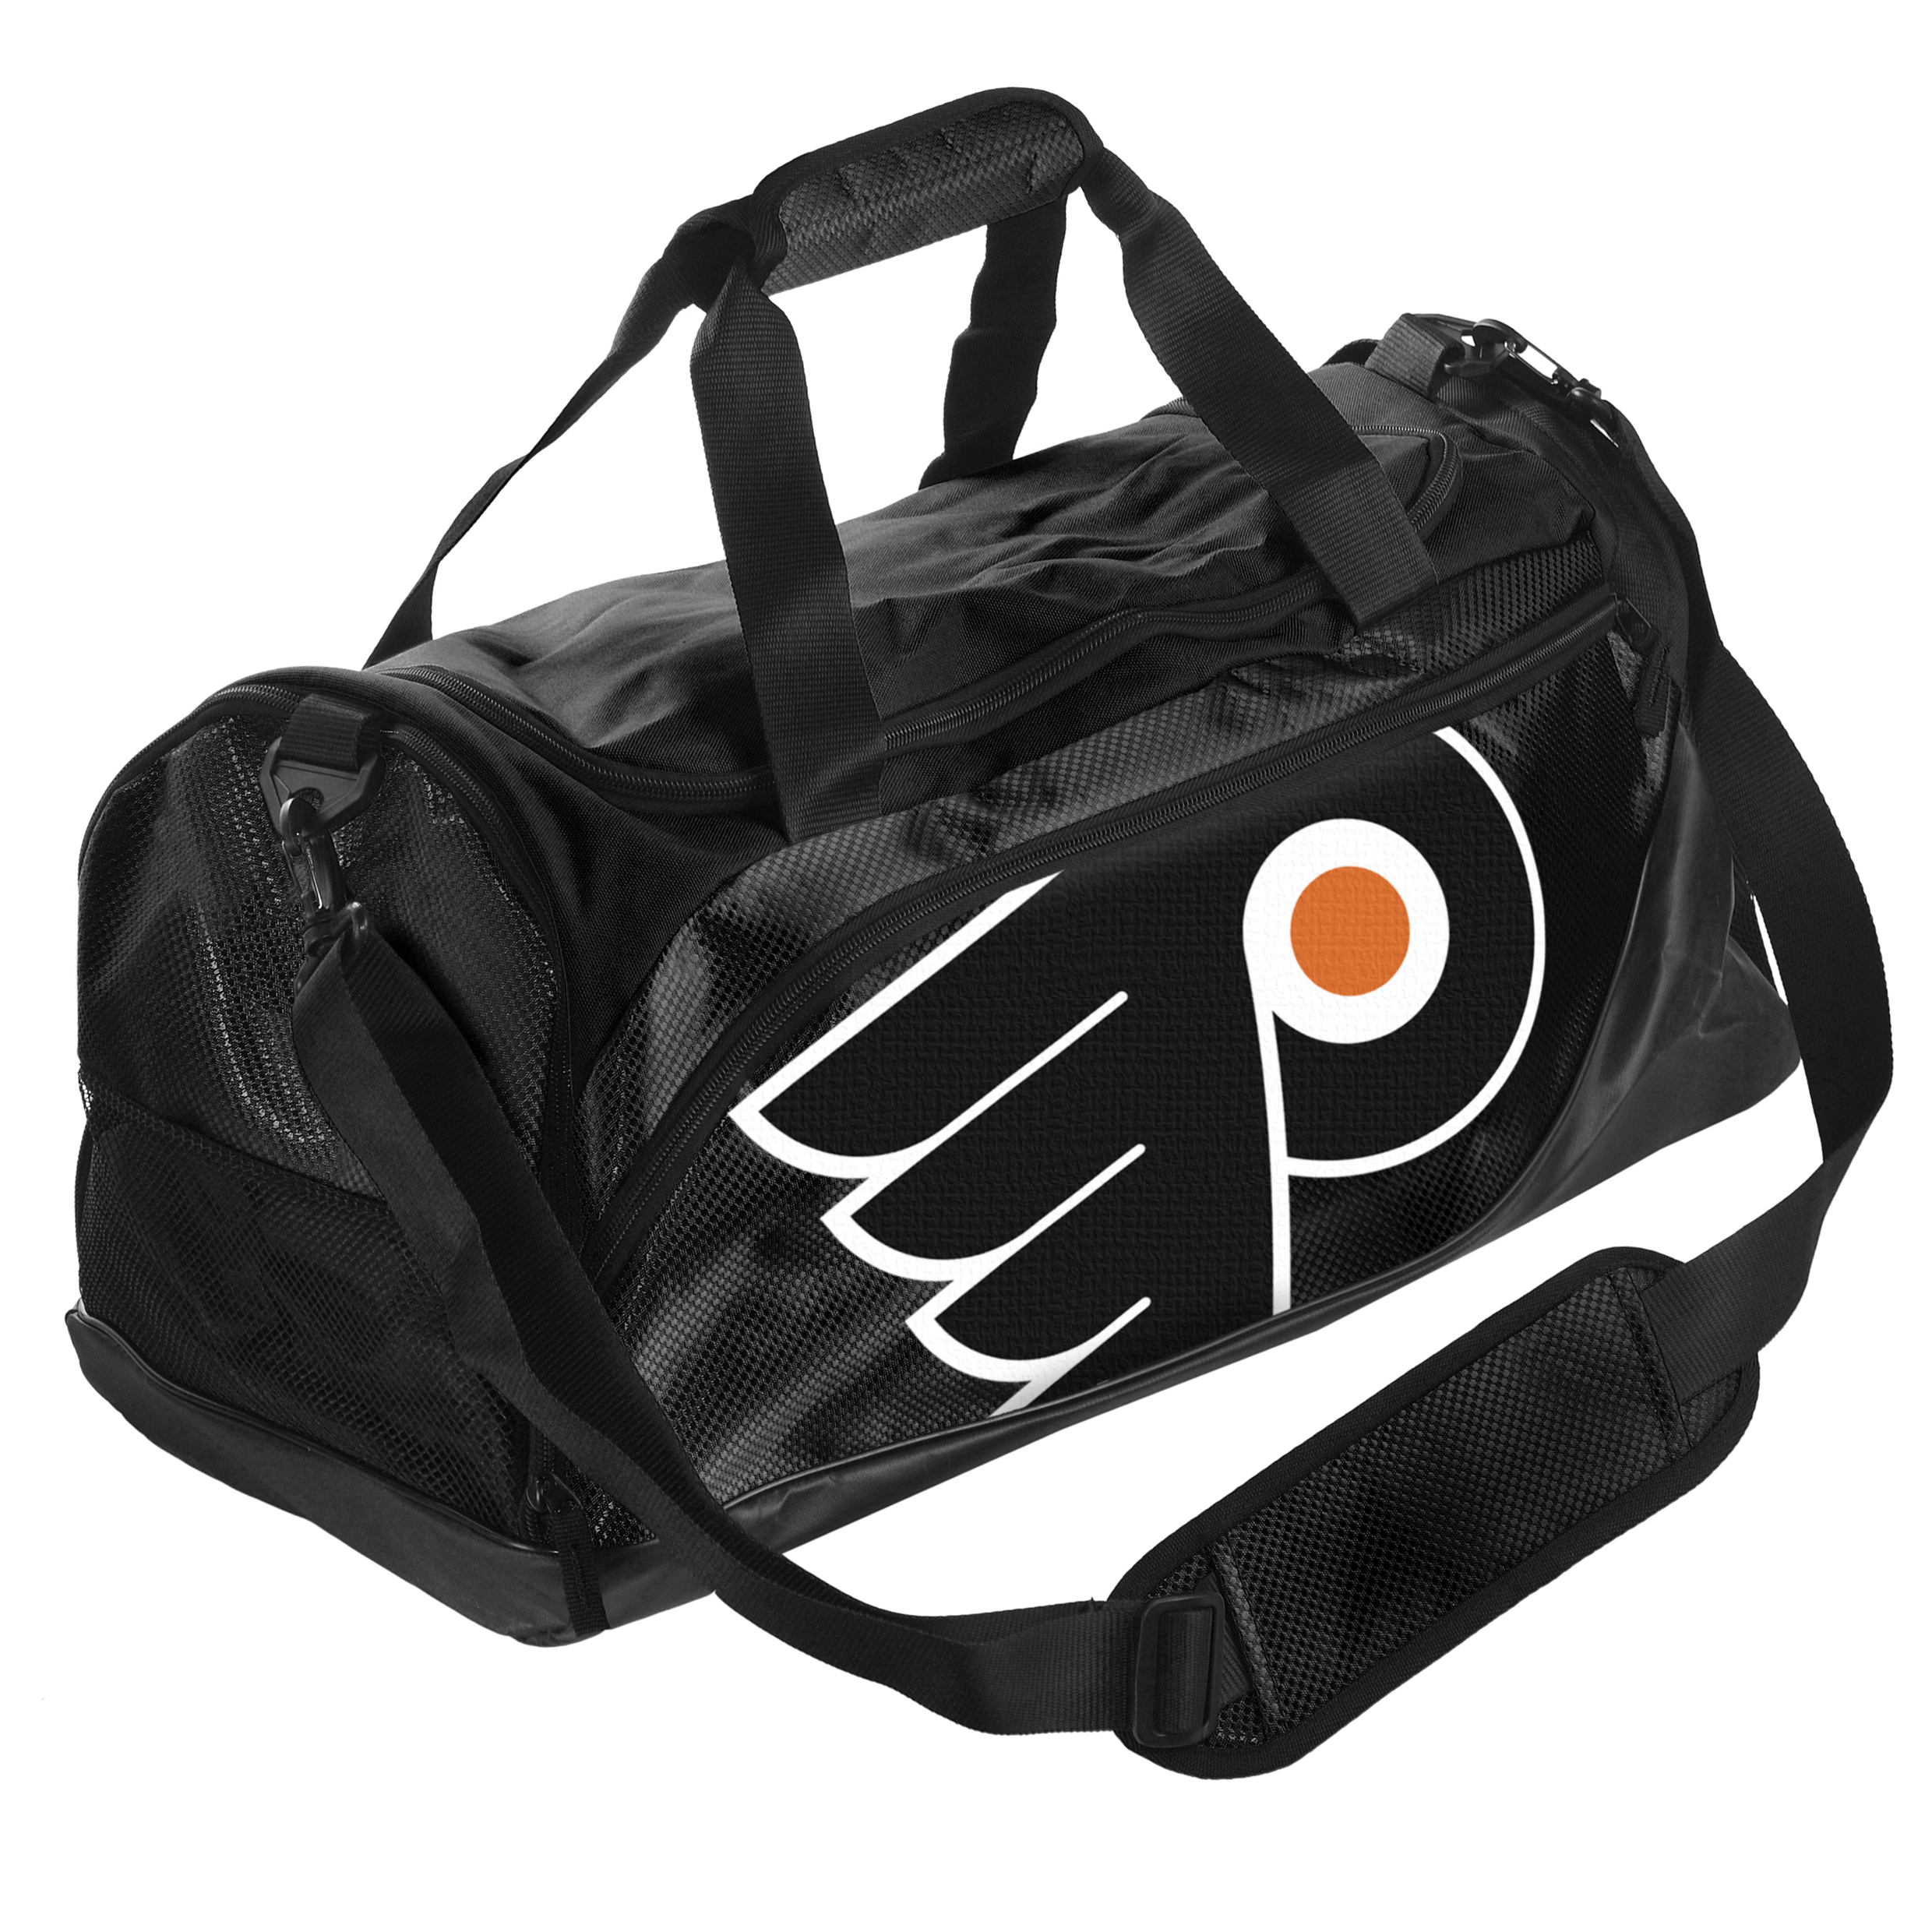 Philadelphia Flyers Locker Room Duffle Bag